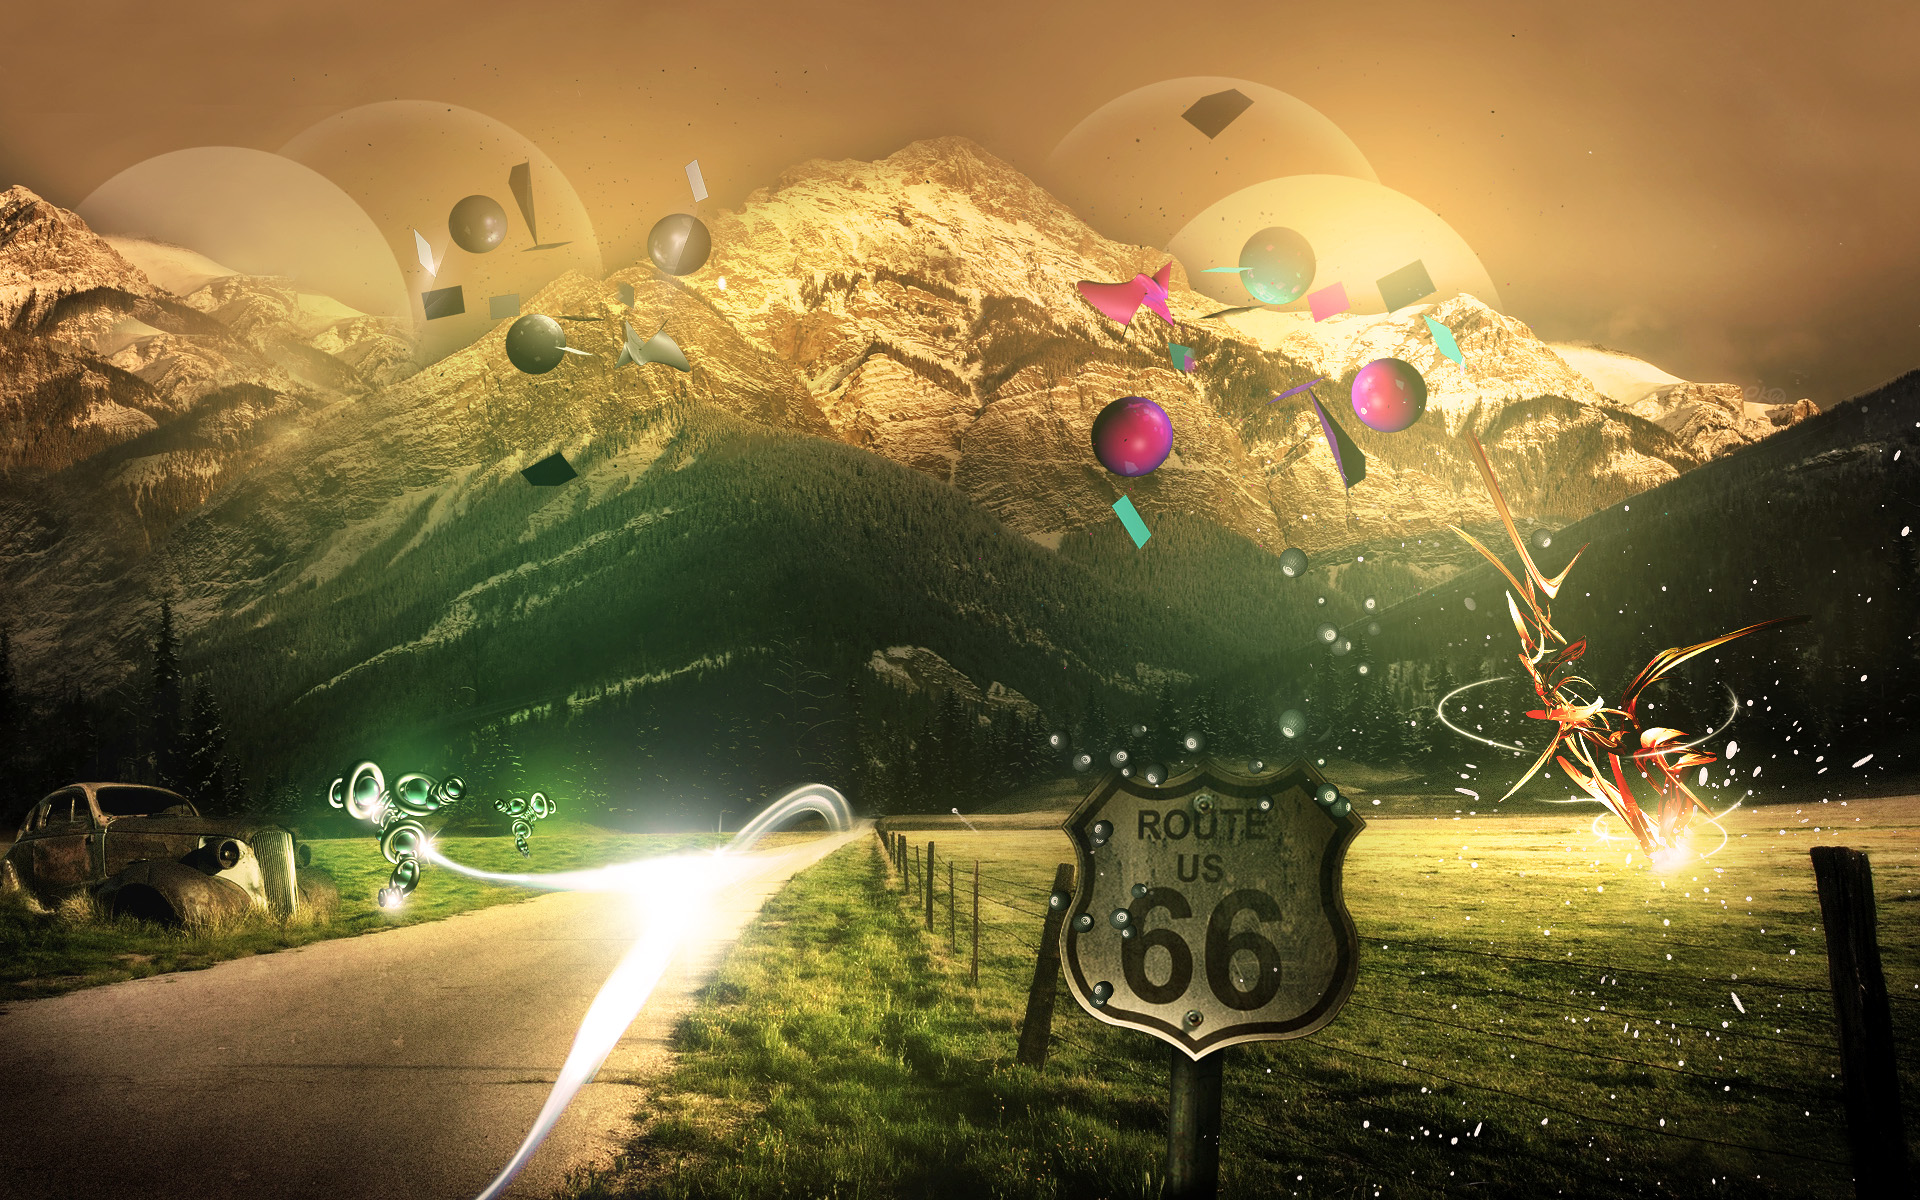 Route 66 Open Road Wallpaper Image Gallery